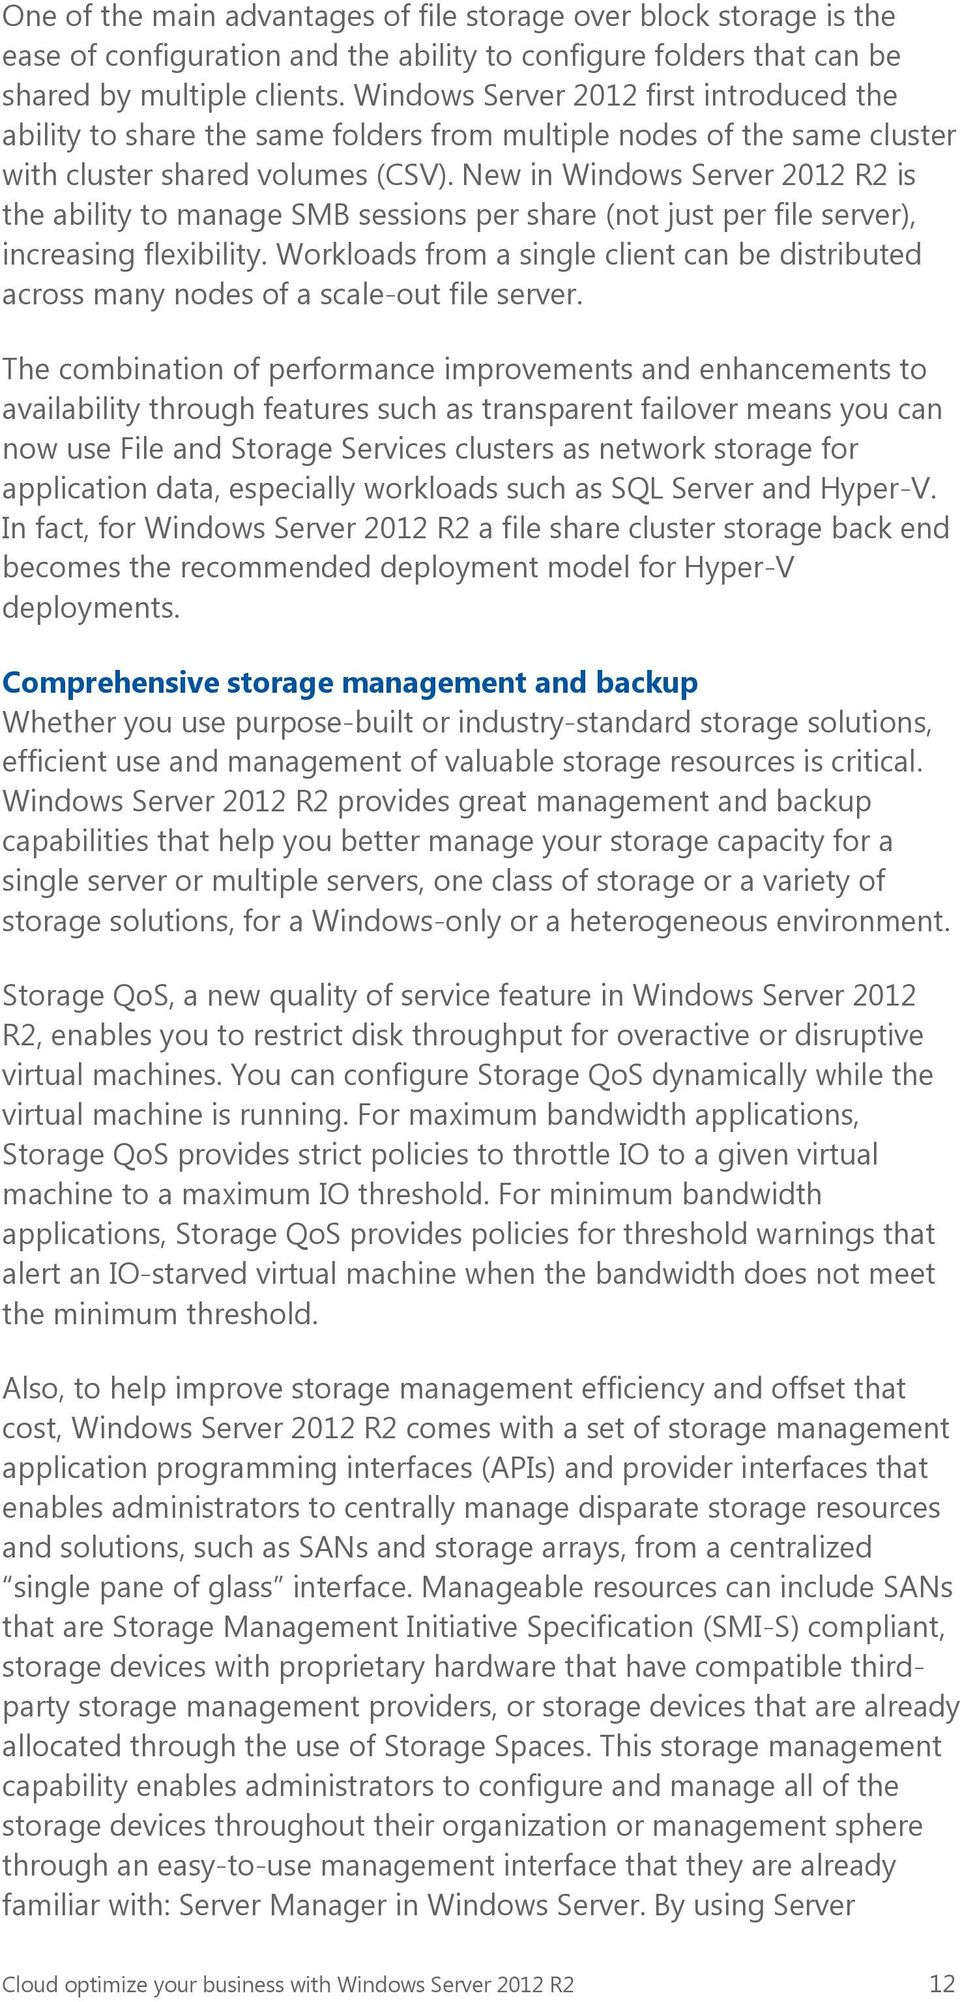 New in Windows Server 2012 R2 is the ability to manage SMB sessions per share (not just per file server), increasing flexibility.